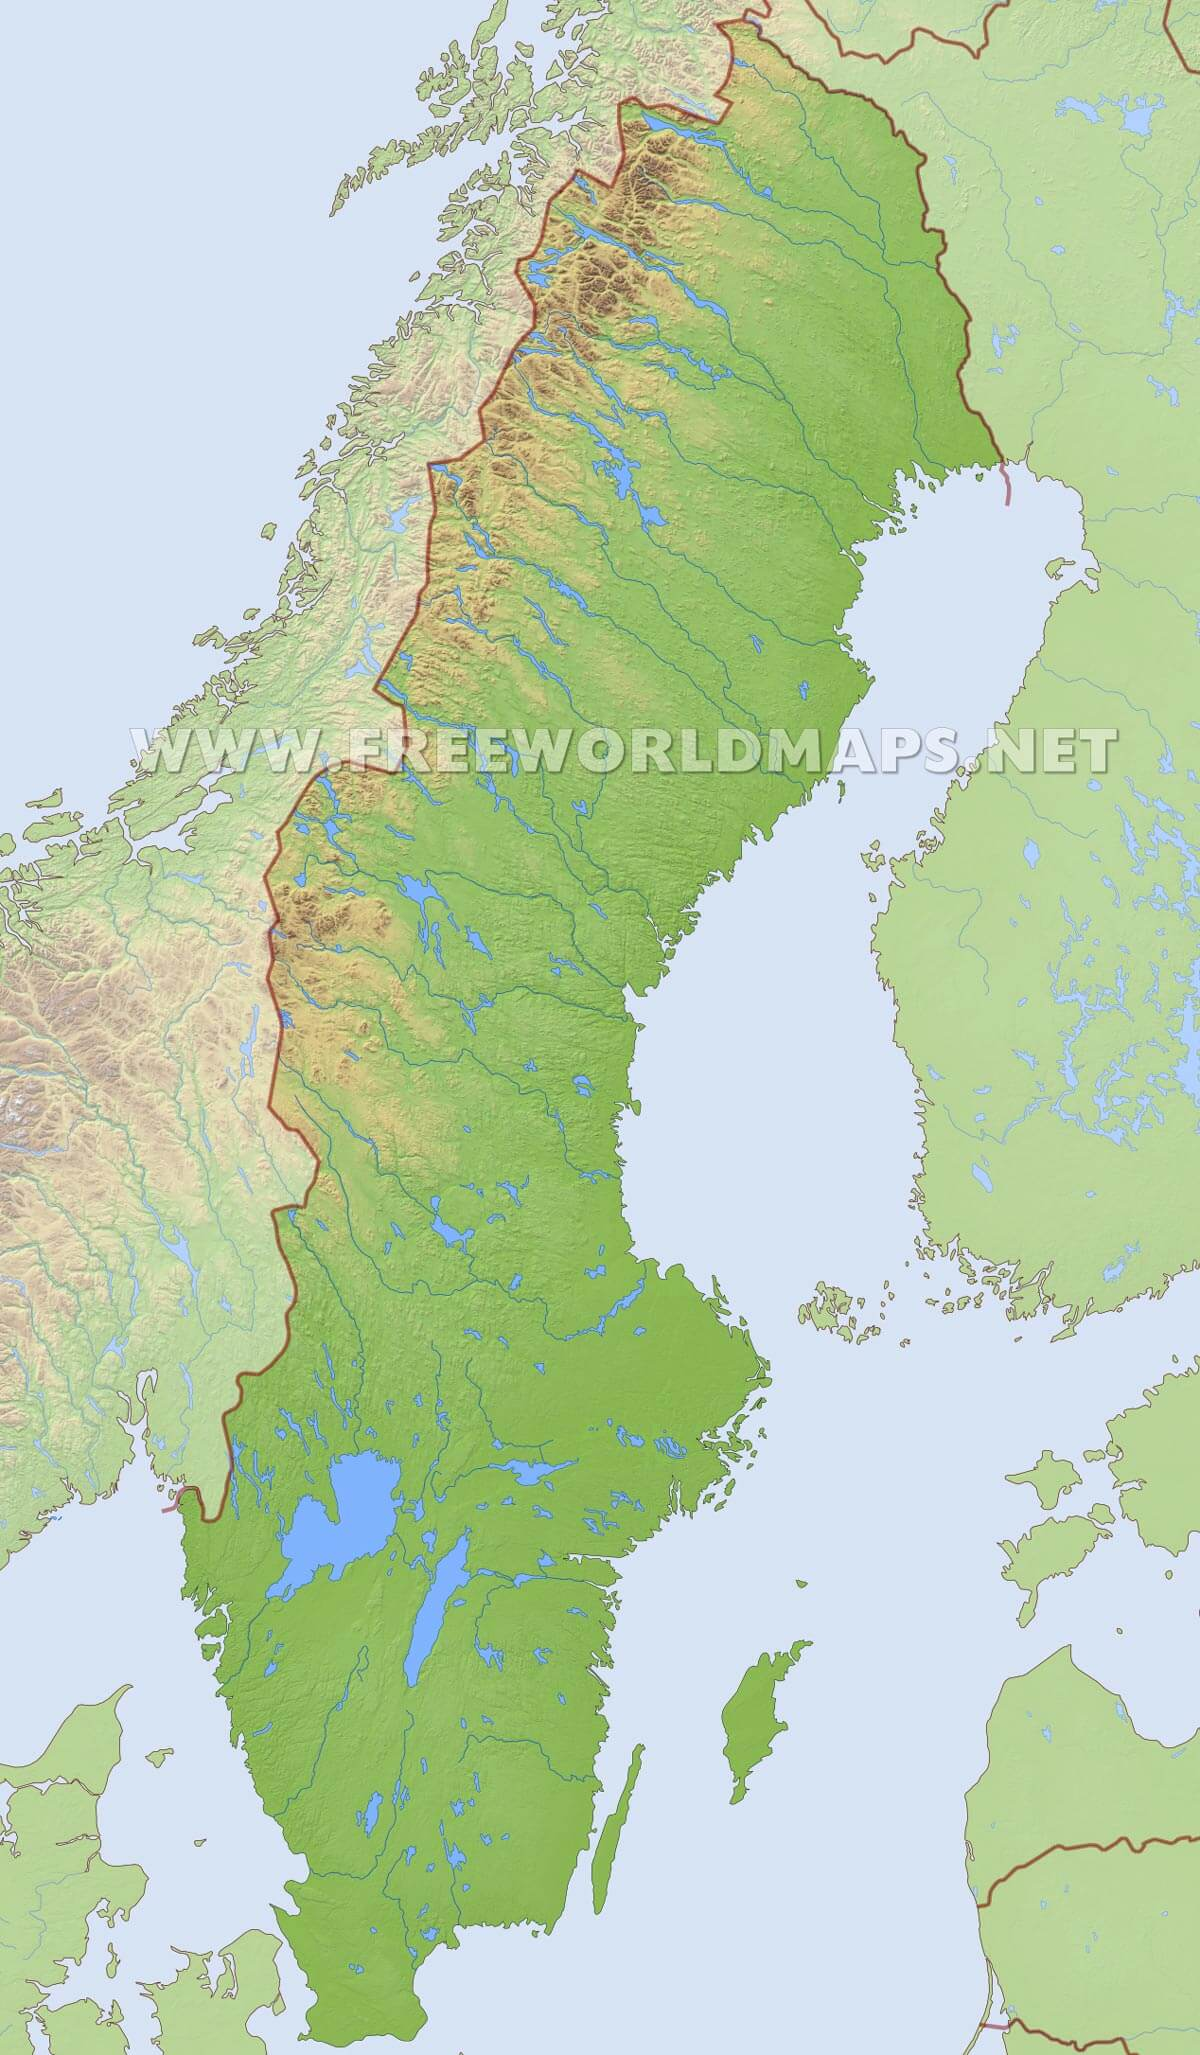 Sweden Geography Map Sweden Map Straight Talk Coverage Map - Sweden map satellite